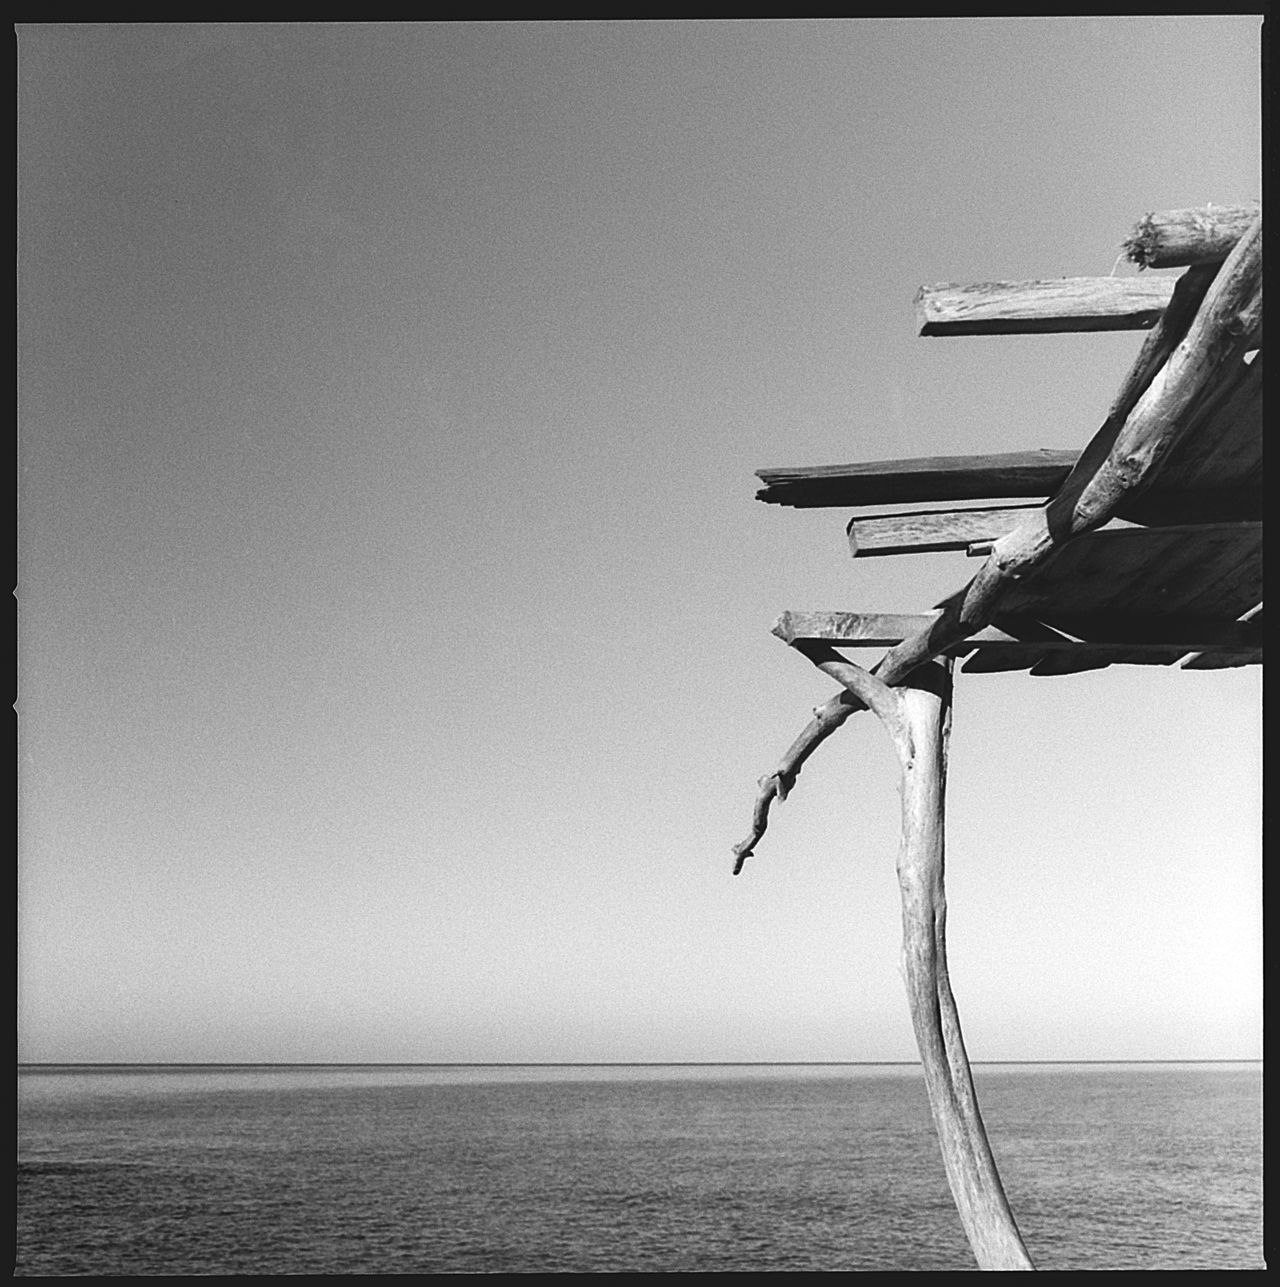 120 Film Beach Beauty In Nature Black & White Blackandwhite Blackandwhite Photography Clear Sky Day Formentera Formentera Island Hasselblad Horizon Over Water Island Nature No People Outdoors Scenics Sea Sky Tranquil Scene Tranquility Water